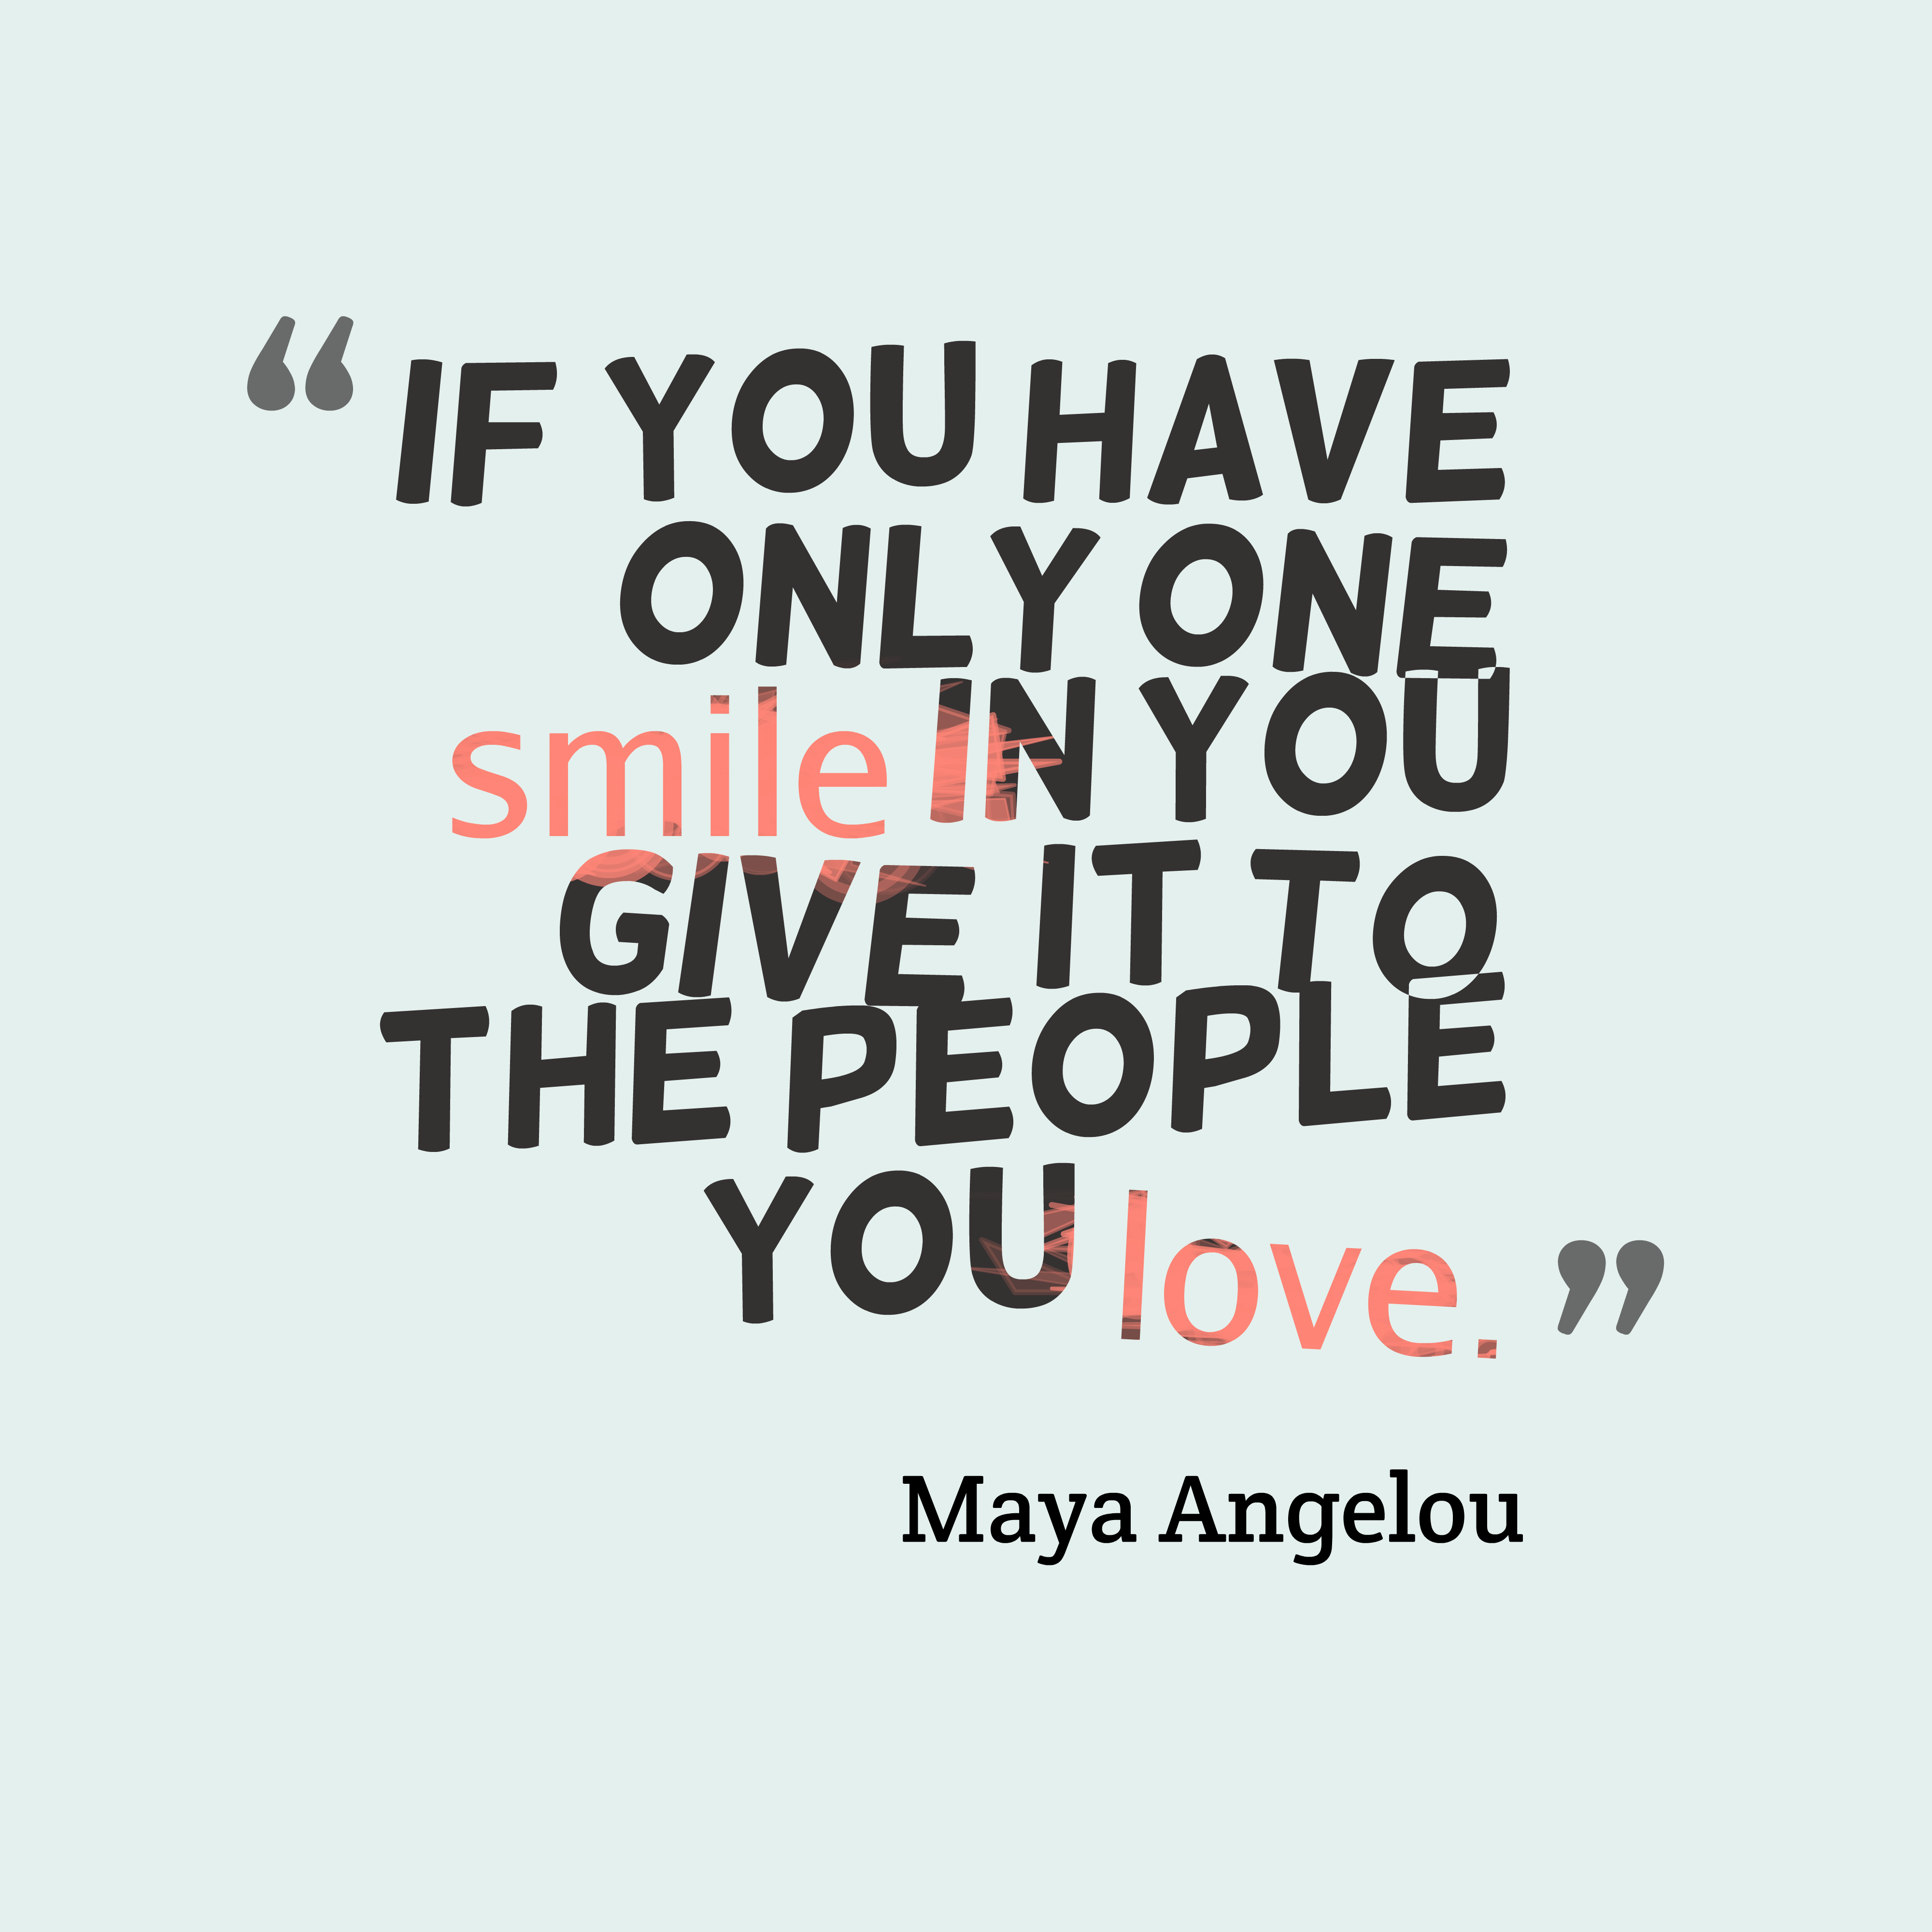 Maya Angelou Quote About Love.